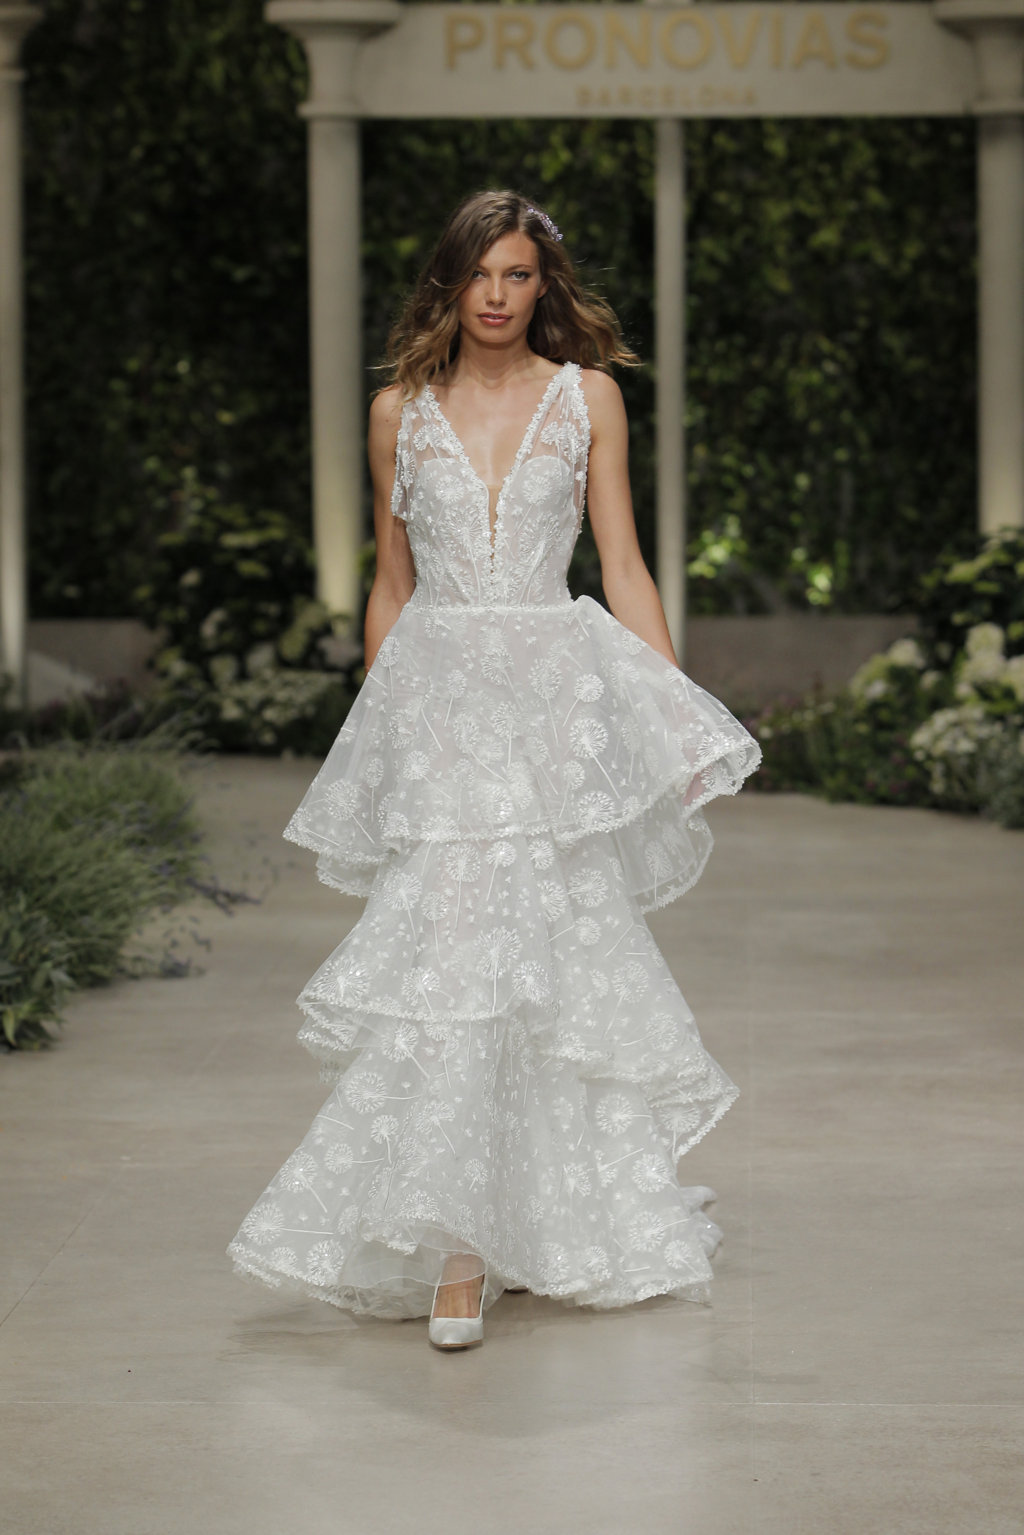 In Bloom Pronovias Fashion Show 2019  Quiero una boda